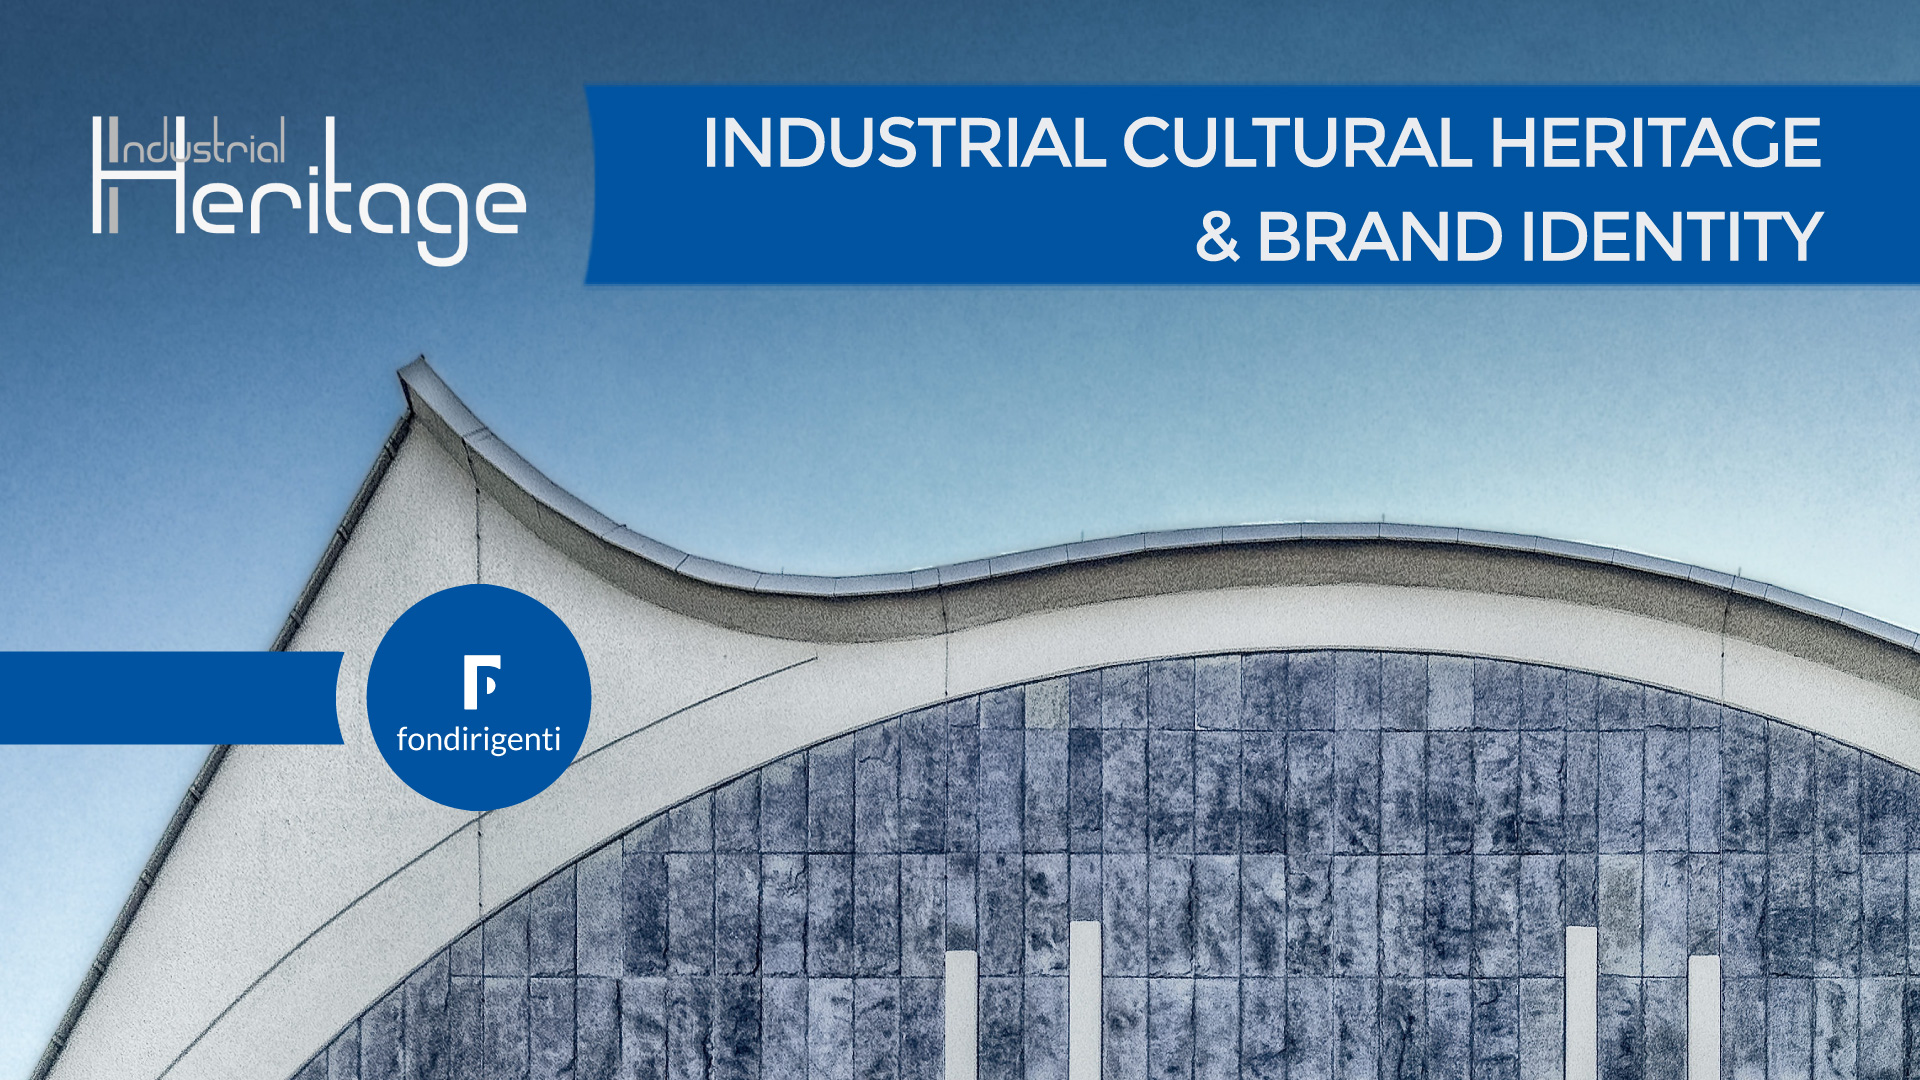 INDUSTRIAL CULTURAL HERITAGE e BRAND IDENTITY